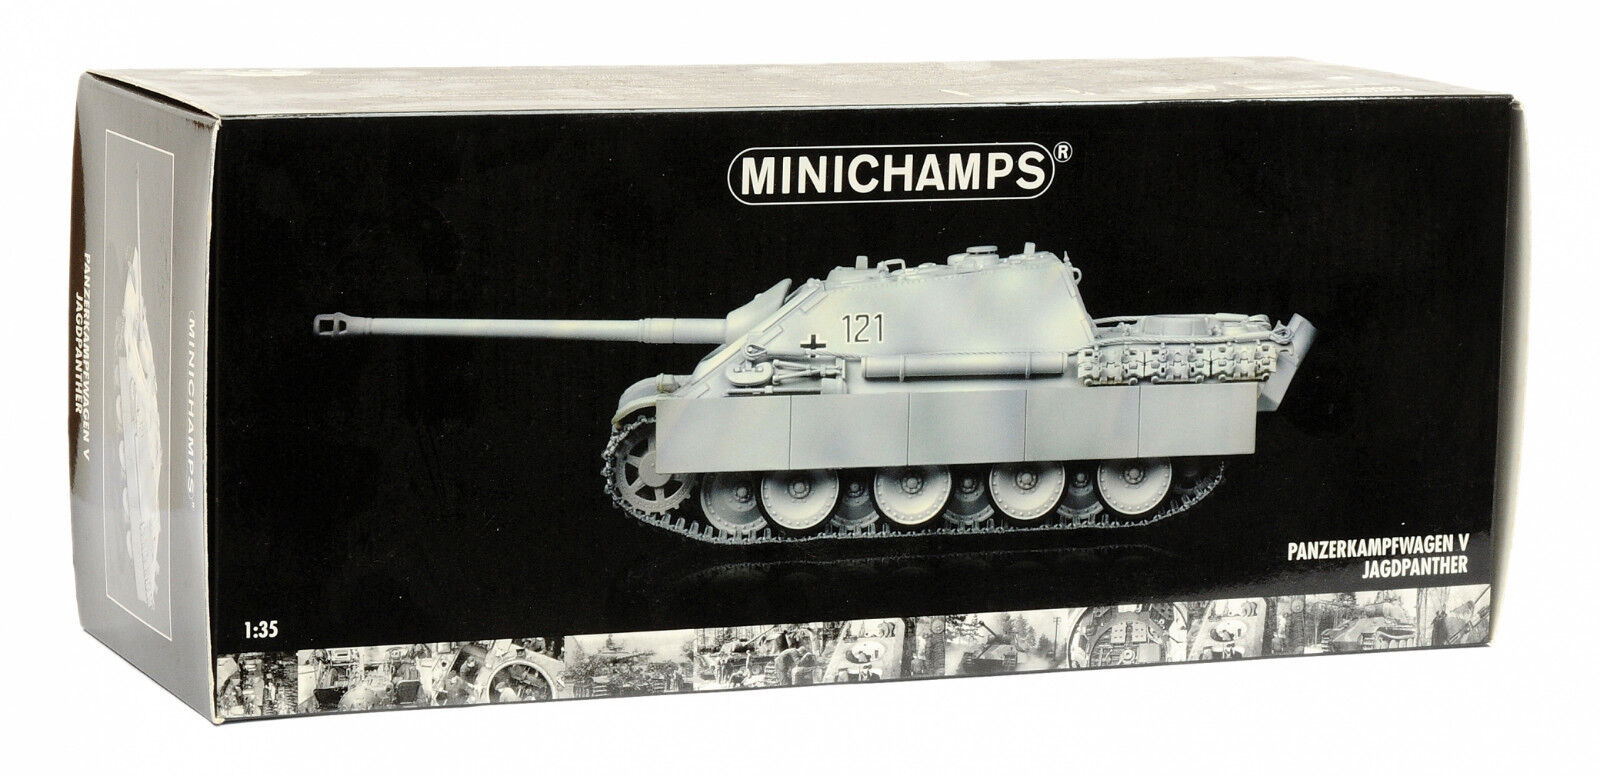 Minichamps 1 35 Panzerkampfwagen V Jagdpanther winter version